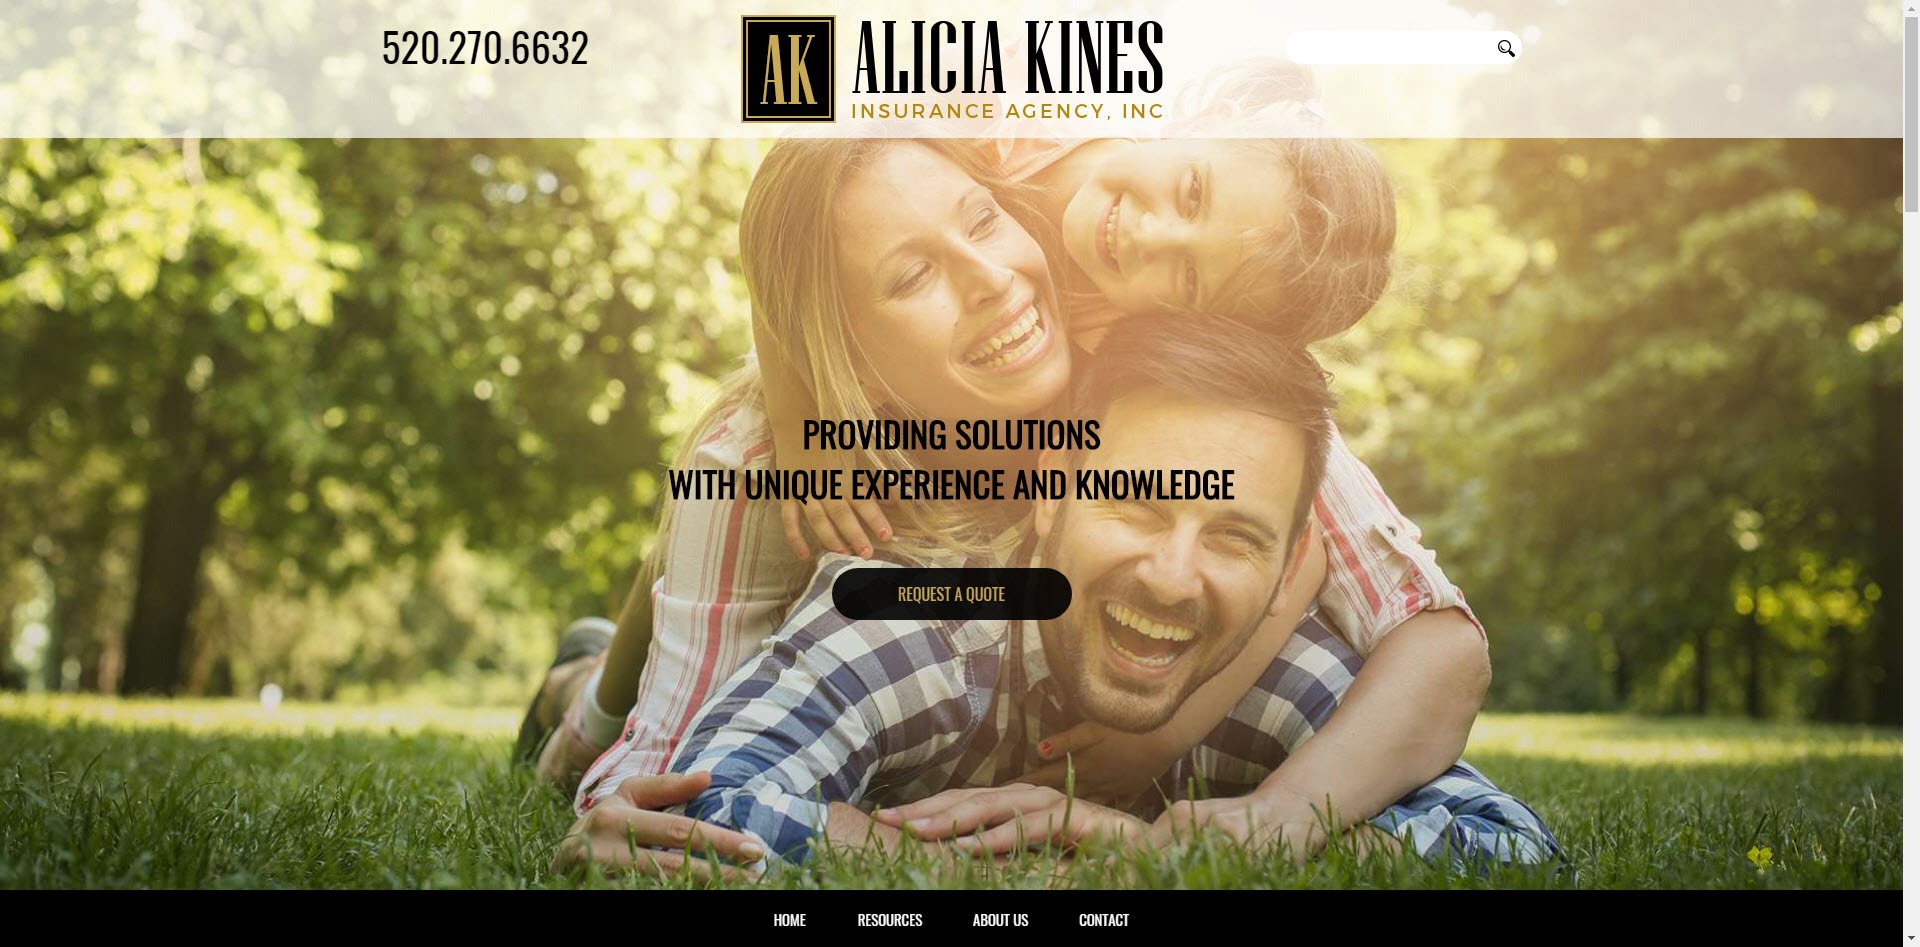 alicia kines insurance agency website